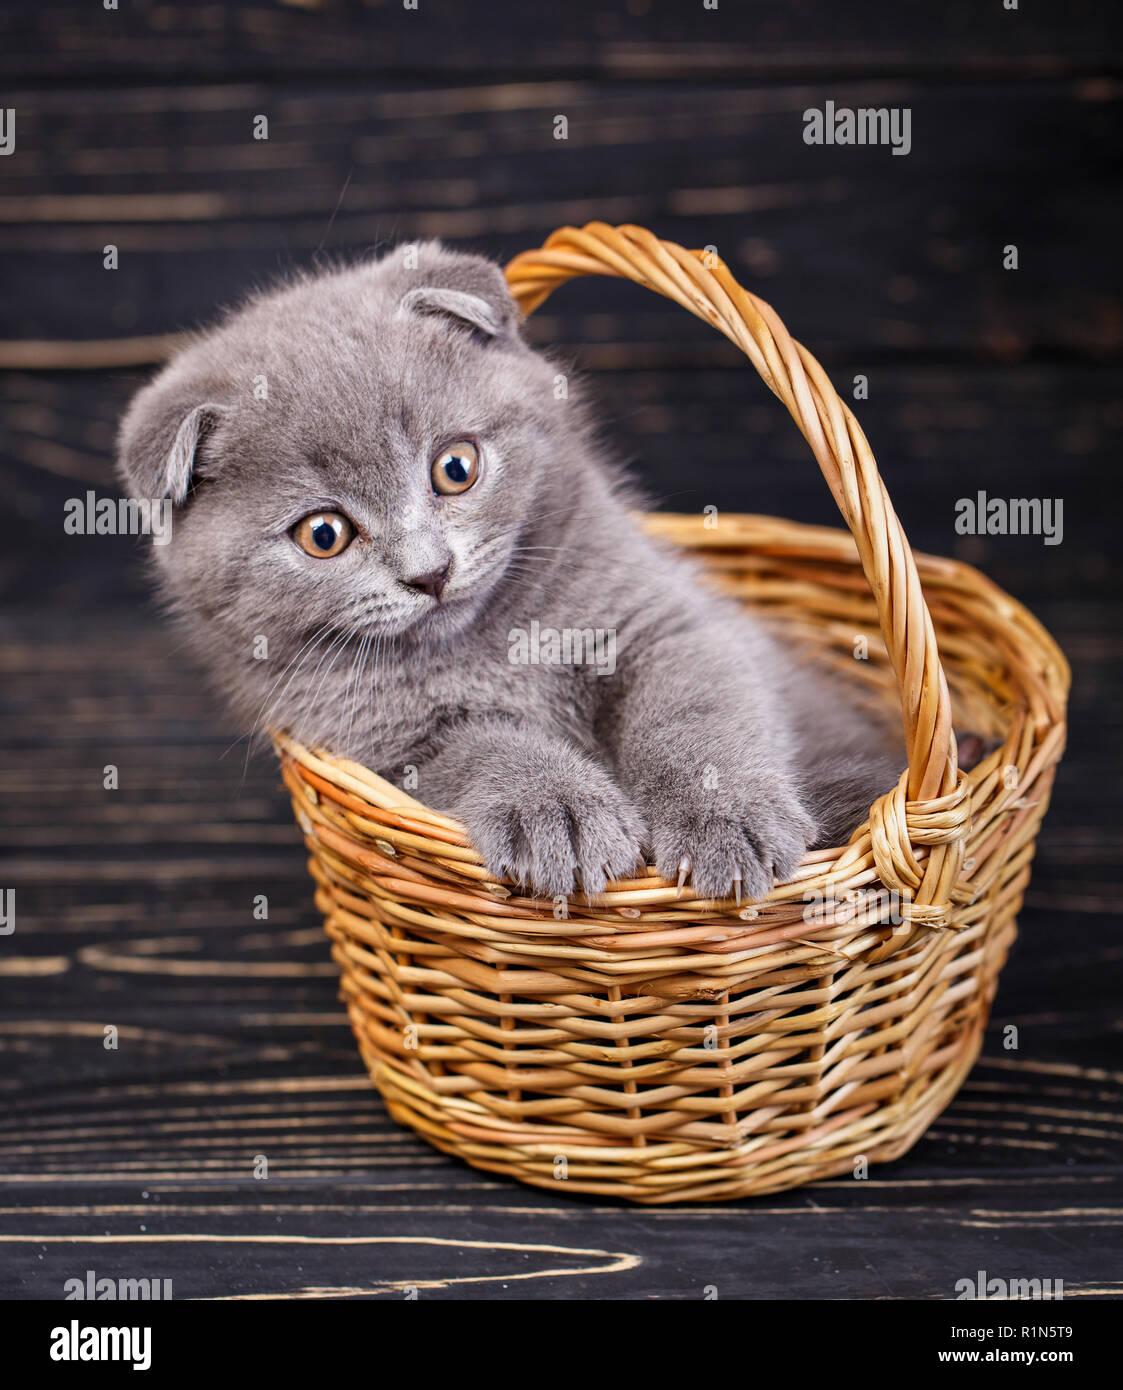 A kitten put a paws on the edge of the basket - Stock Image